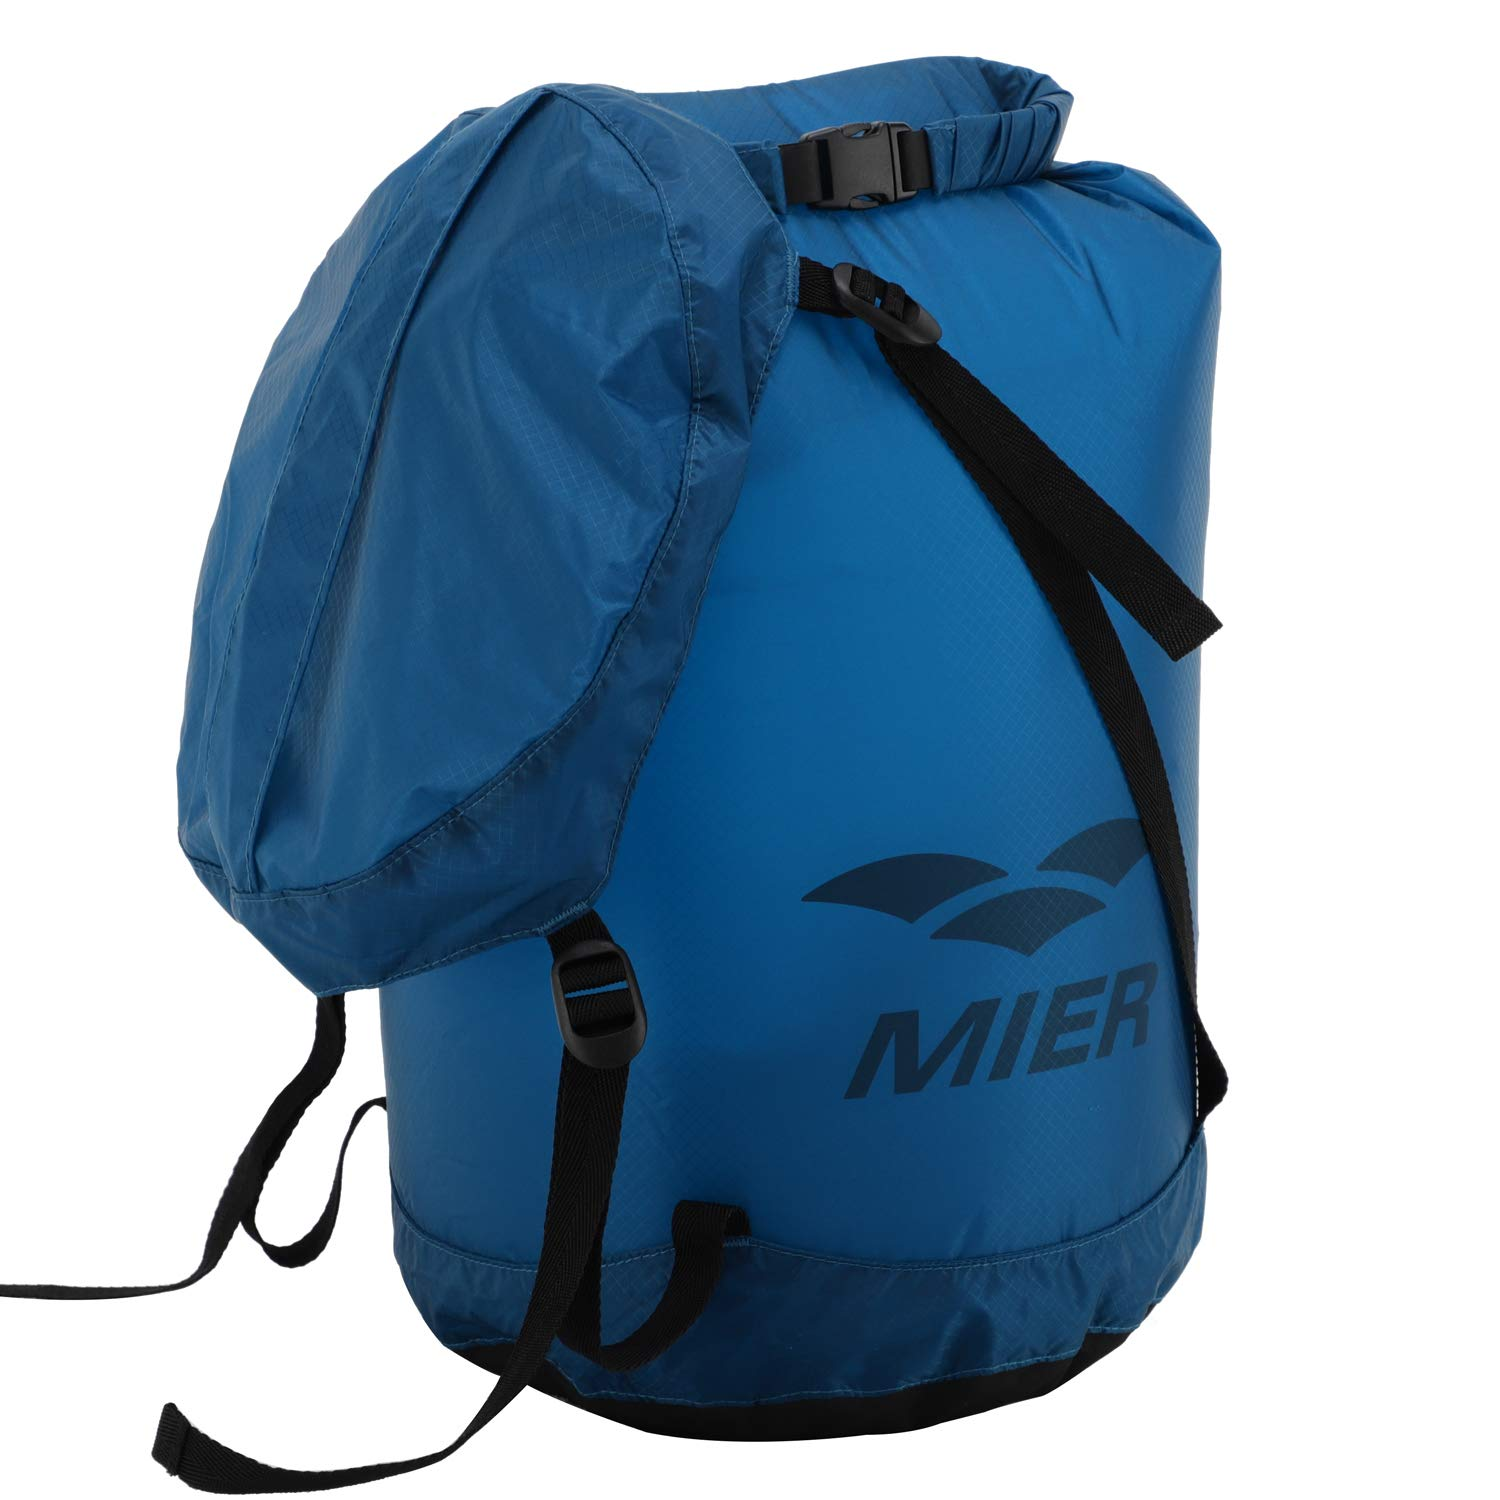 MIER Waterproof Compression Stuff Sack Ultralight Cordura Nylon Dry Bag for Backpacking, Kayaking, Camping, Outdoor Sports, 10L, Blue by MIER